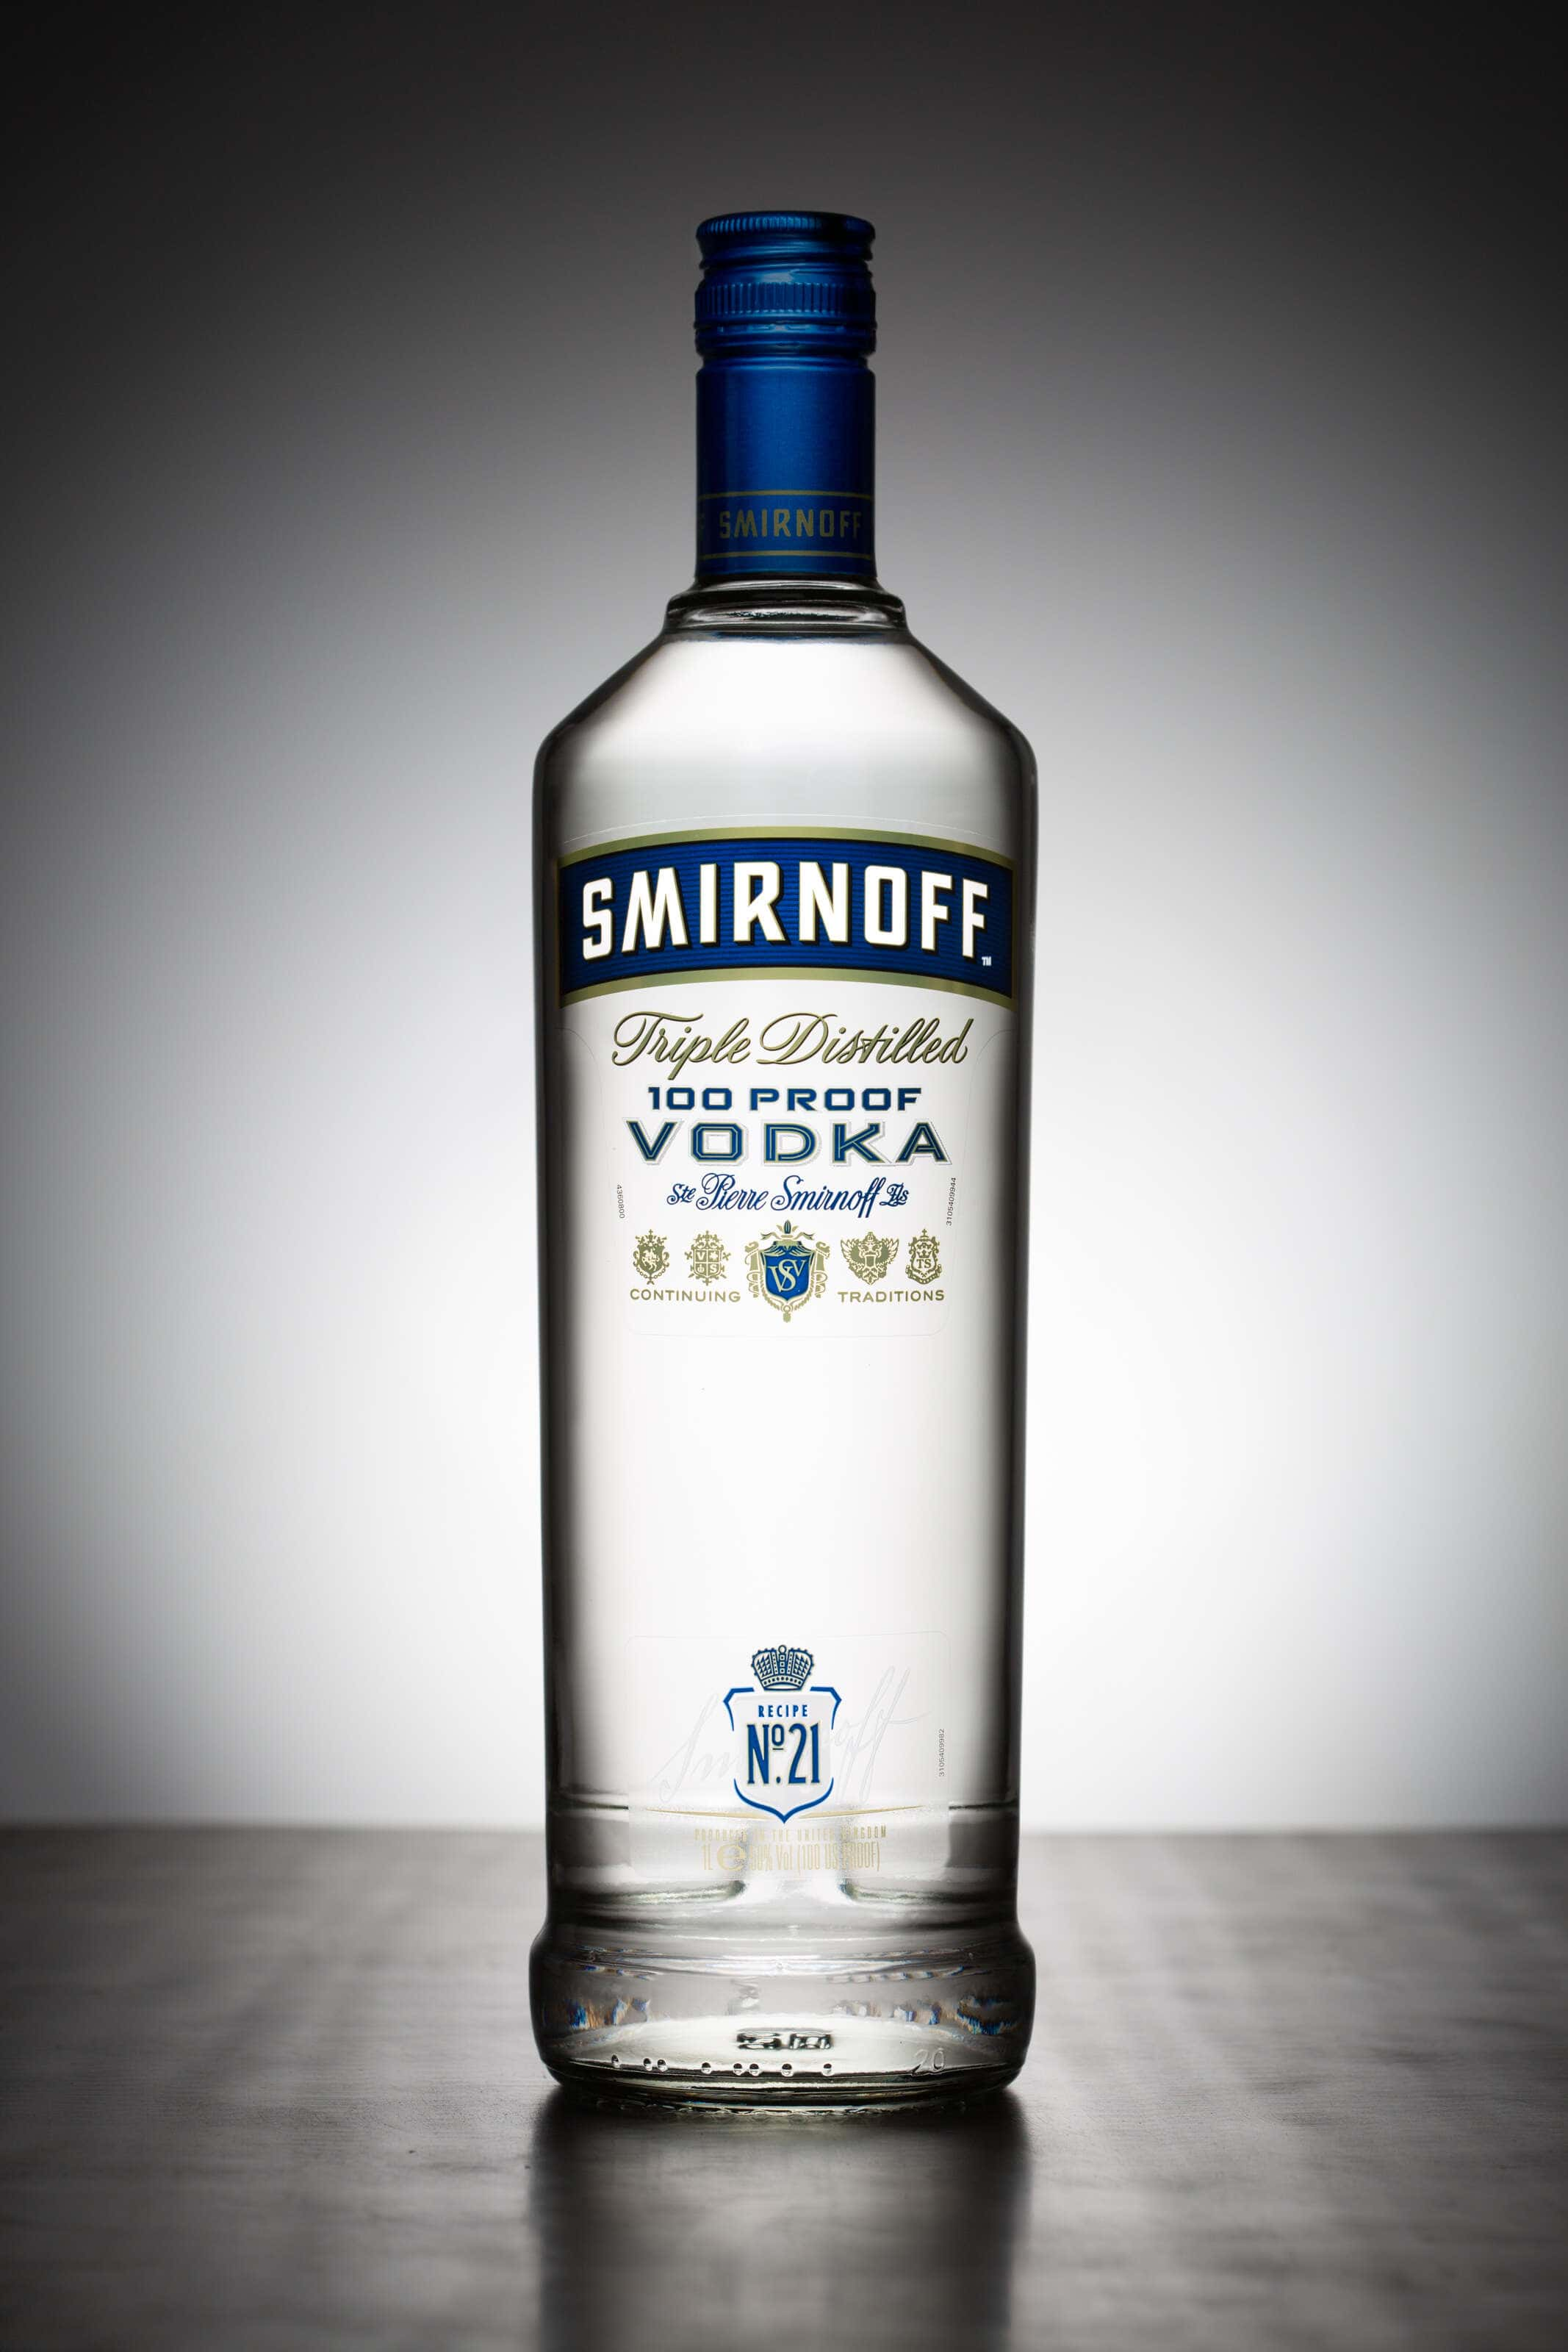 Smirnoff bottle image shot sitting on brushed stainless steel with a white halo behind.